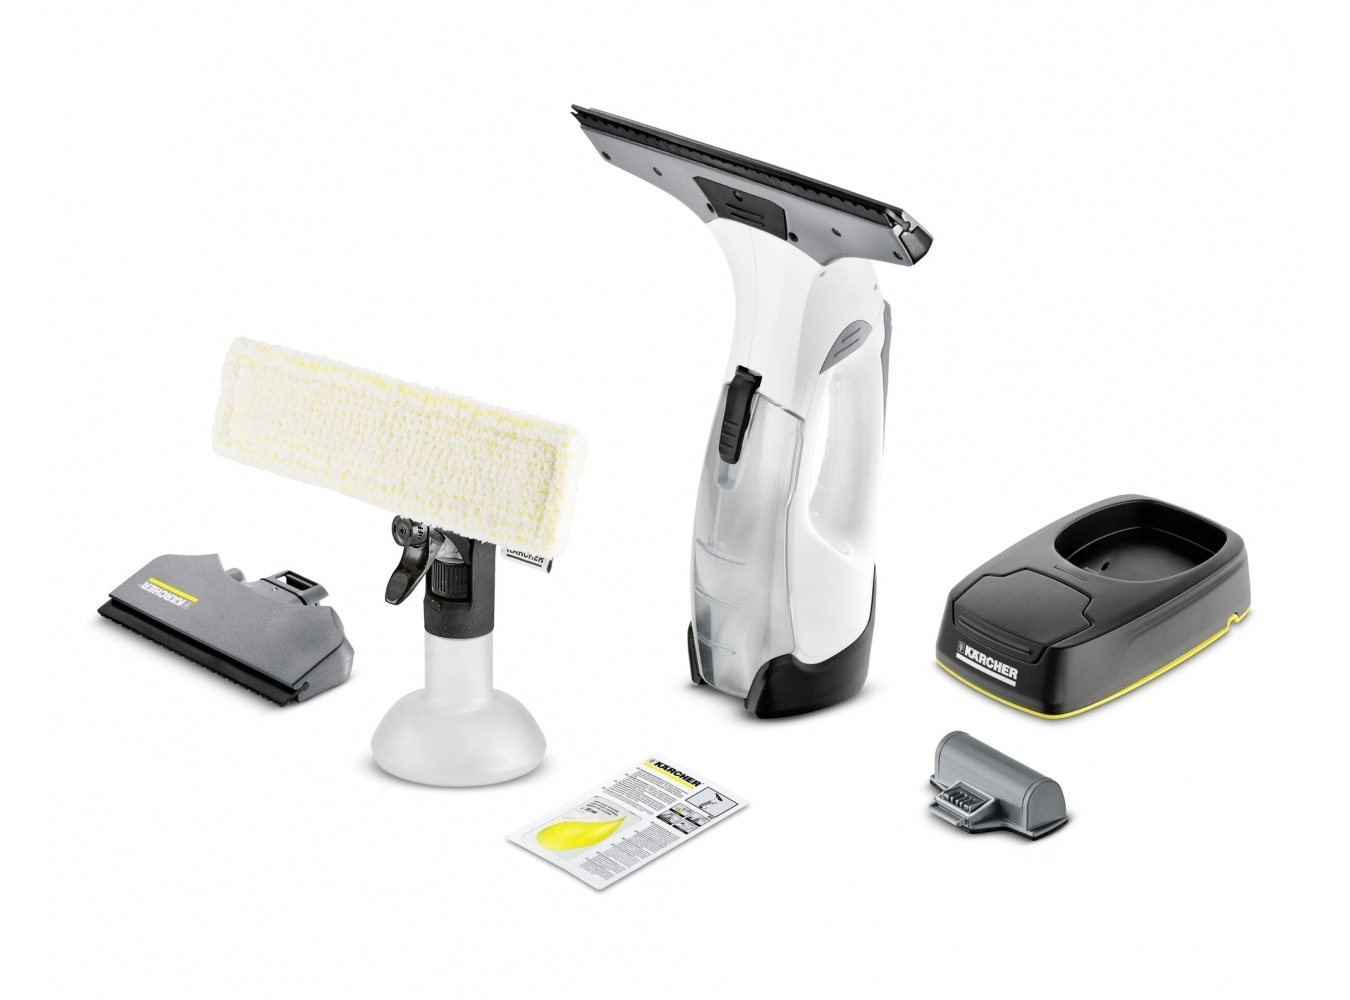 Karcher WV5 Prem. Non-Stop Cleaning Kit Fenstersauger 2xAkku für 109,99 Euro